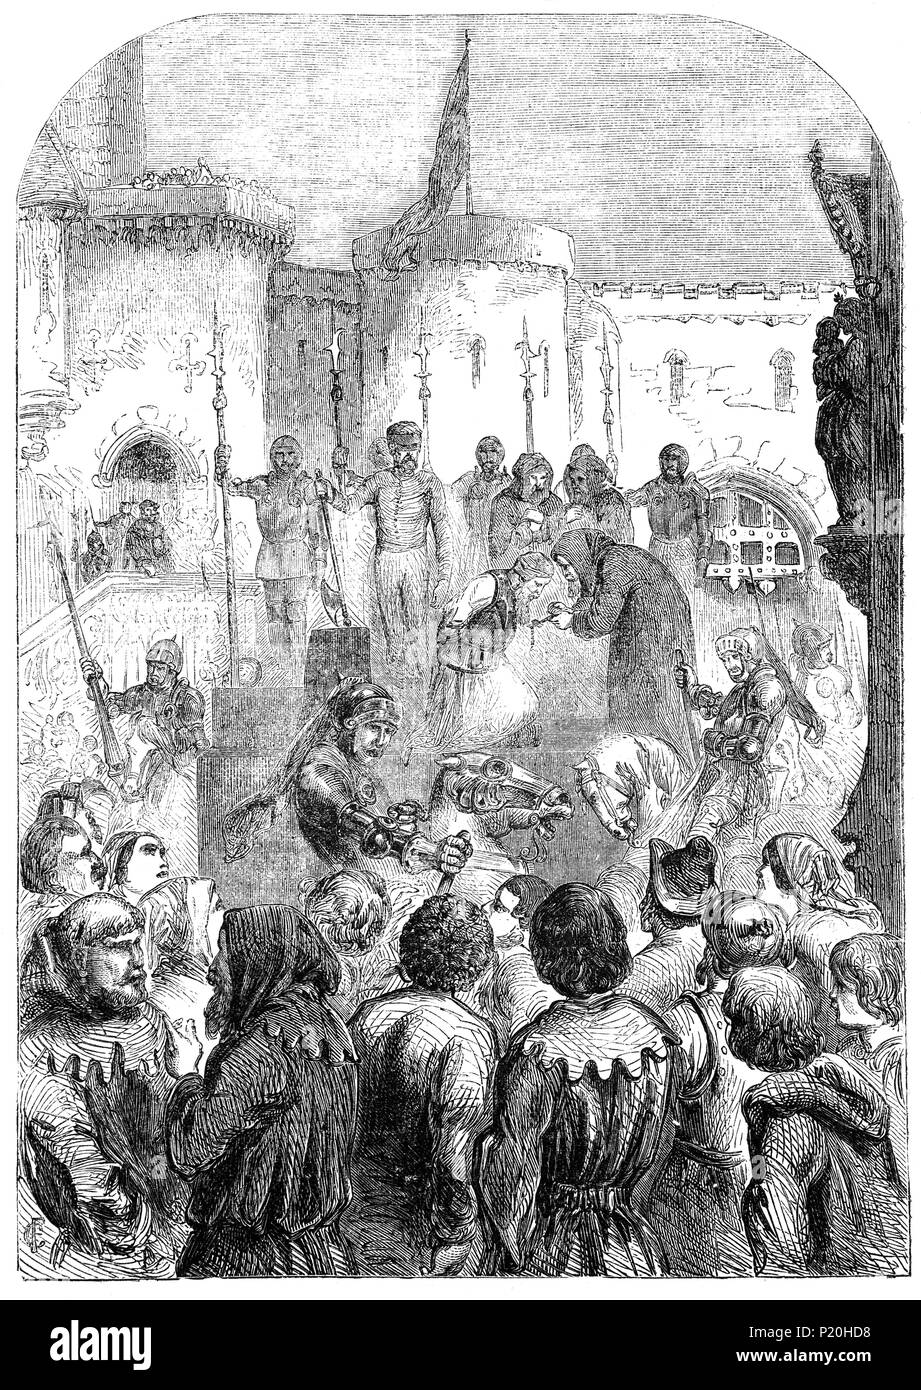 The execution of Archbishop Richard Scope in York following a rebellion against King Henry IV on June 8th, 1405.  in 1405, Henry Percy, Earl of Northumberland, Thomas Mowbray, Earl of Norfolk and Richard Scrope, Archbishop of York rebelled against excessive taxation, maltreatment of the Church and the clergy, and corruption in the King's household.  They raised an army of common people in Yorkshire, but stood them down when Ralph Neville, Earl of Westmorland, assured Scrope and Mowbray that their grievances would be met. But Westmorland had them imprisoned, then beheaded outside the city. - Stock Image